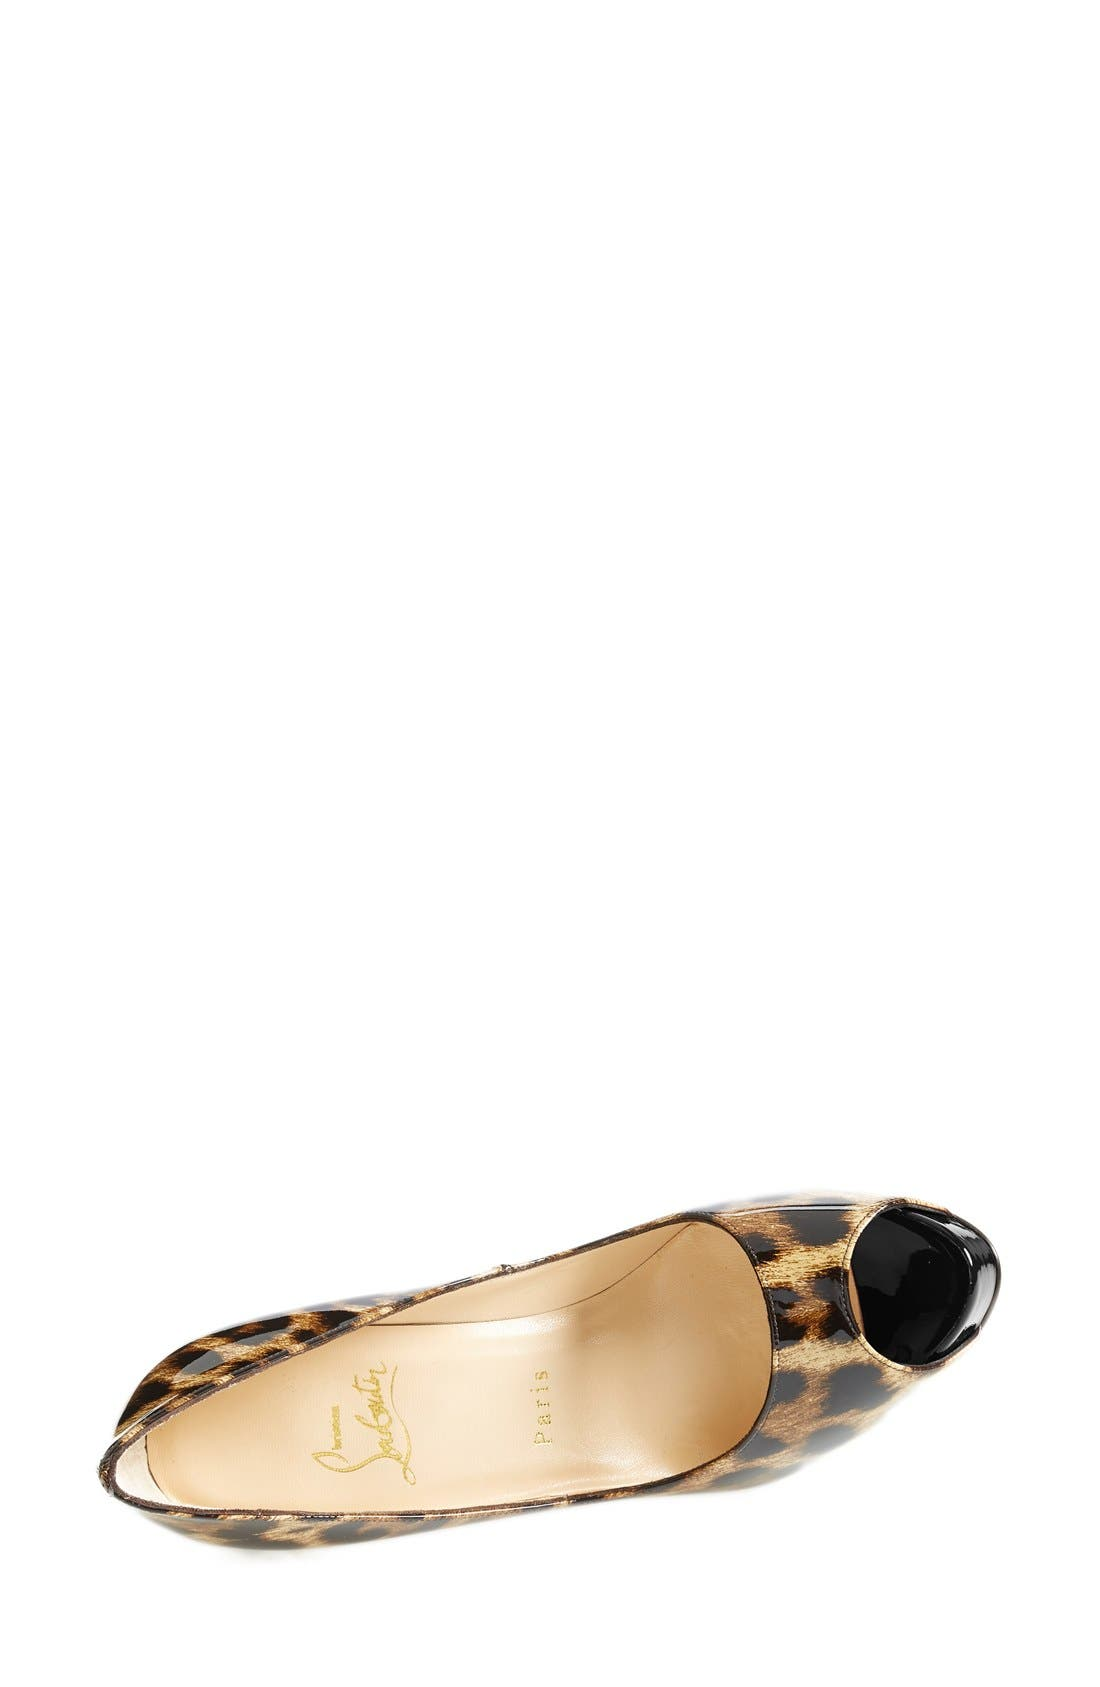 Alternate Image 3  - Christian Louboutin 'New Very Prive' Pump